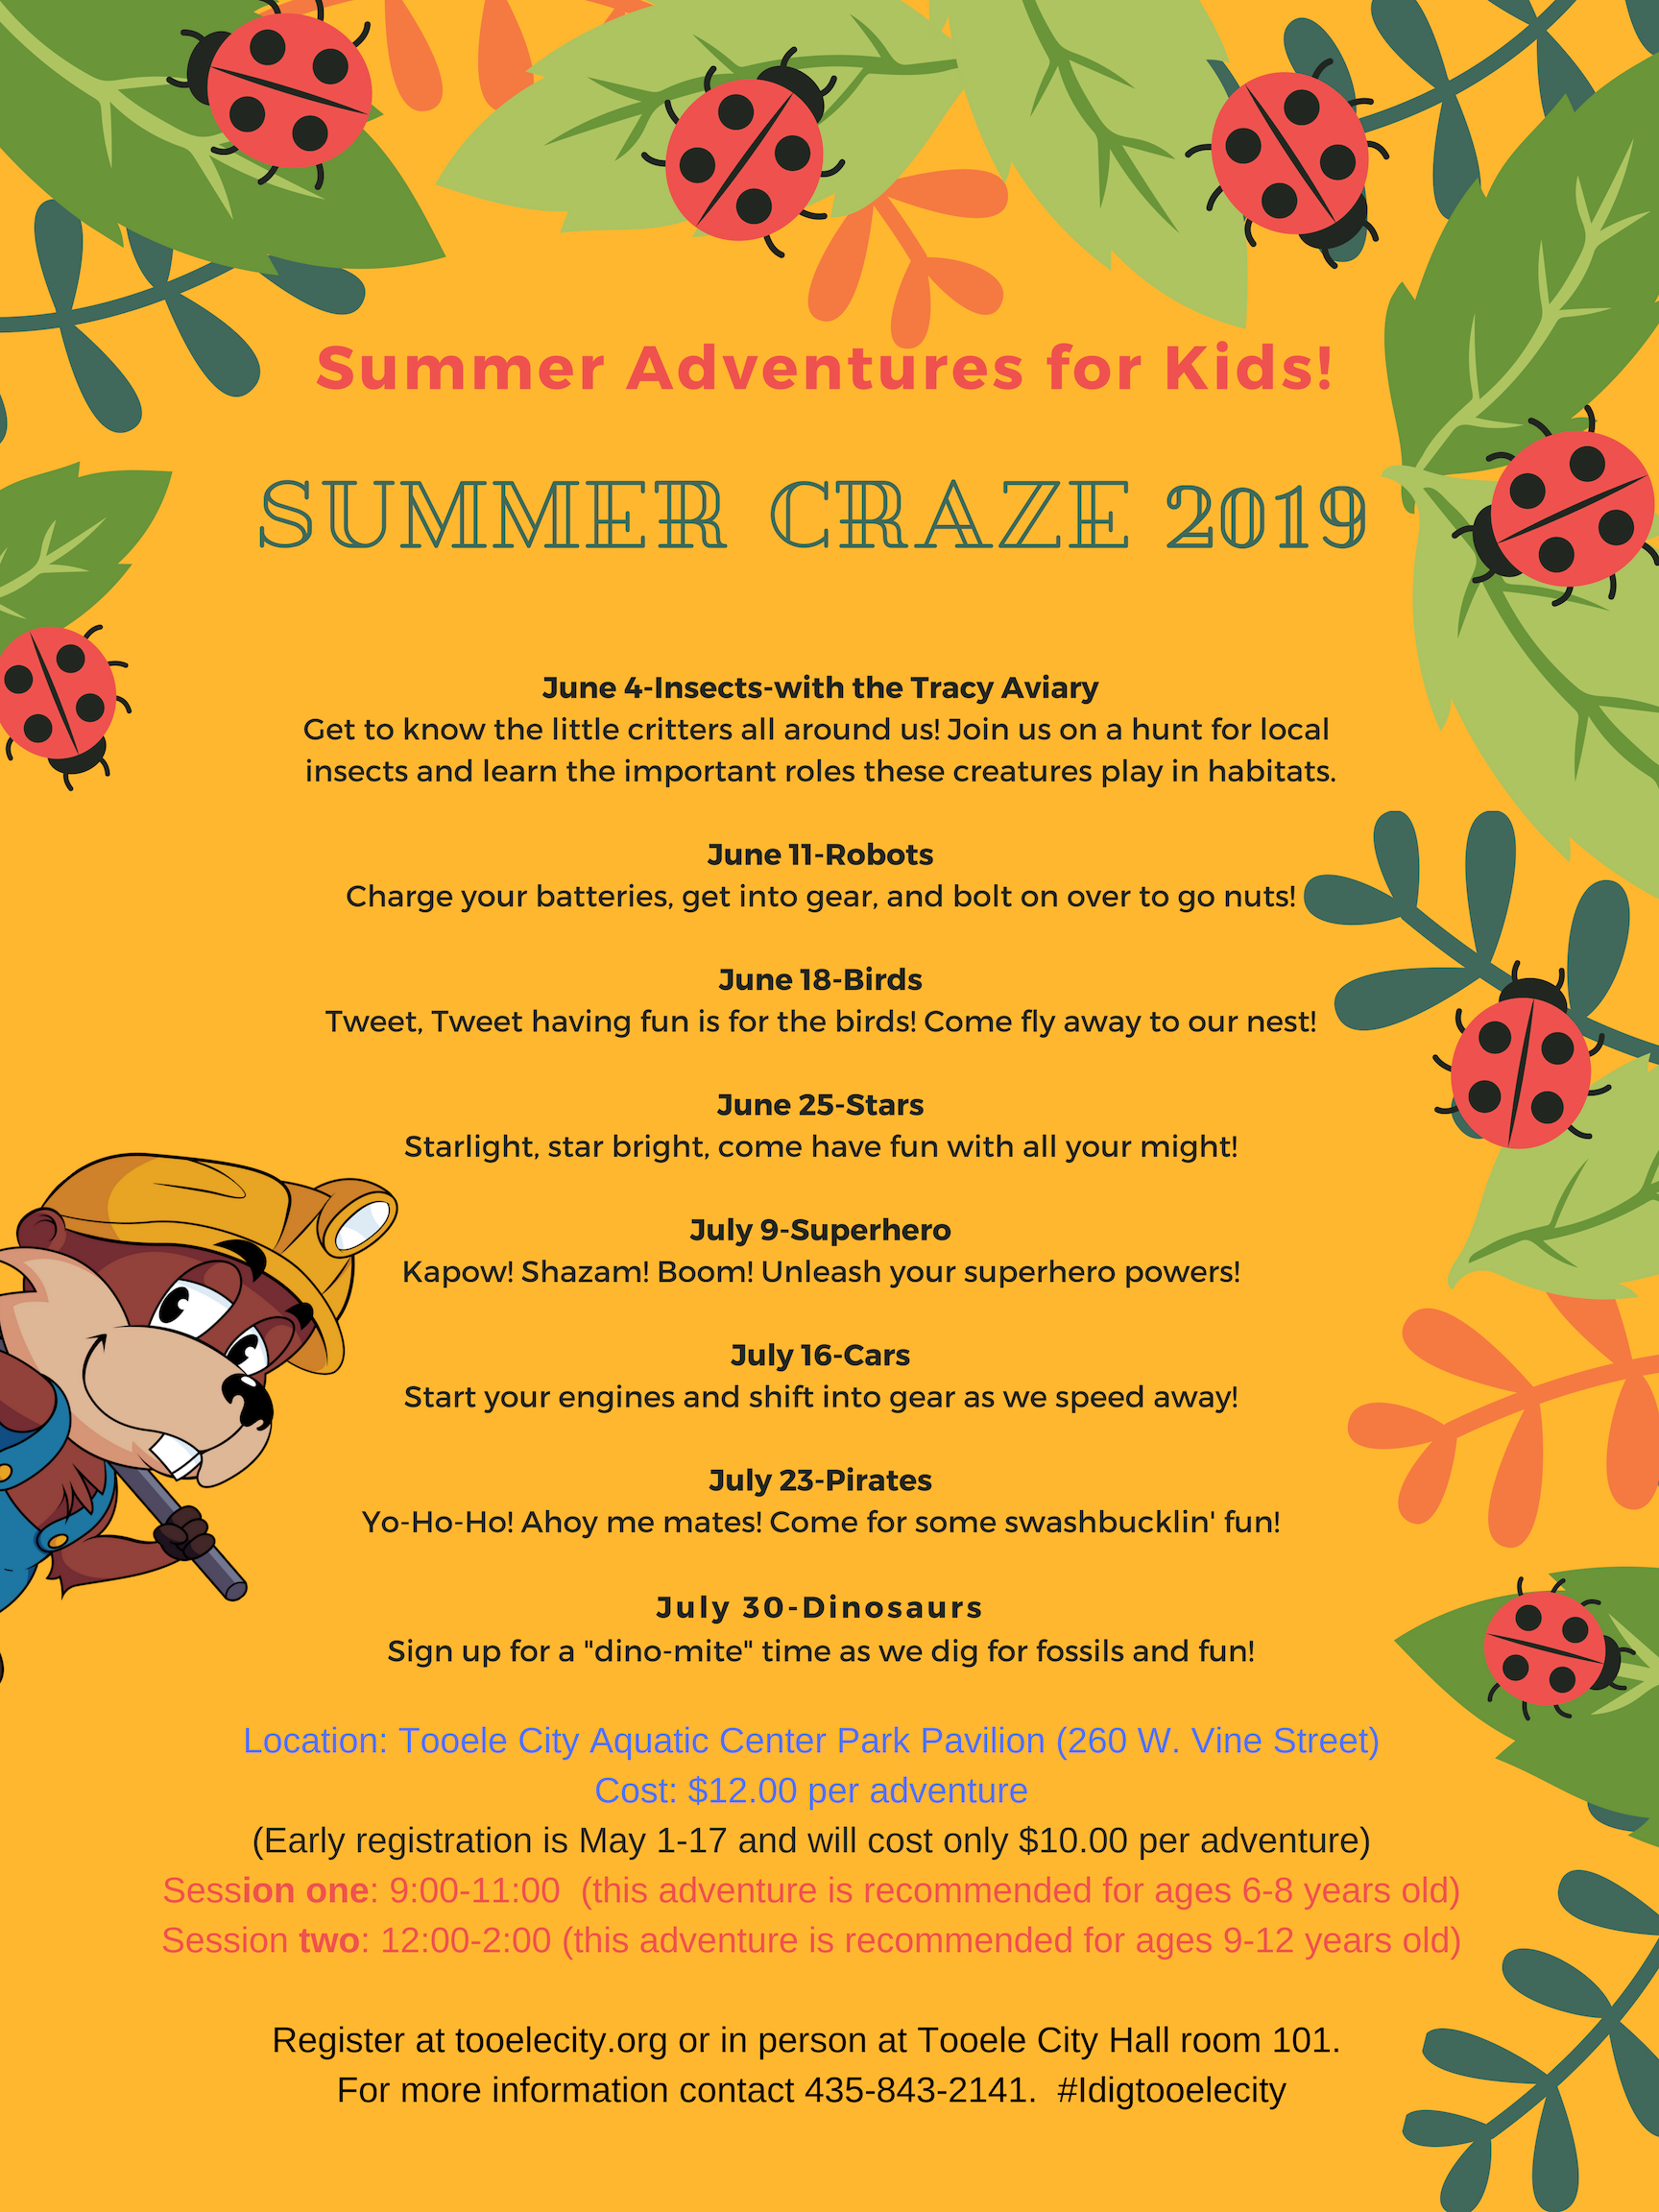 CRAZE: Summer Adventures for Kids! @ Aquatic Center Park | Tooele | Utah | United States